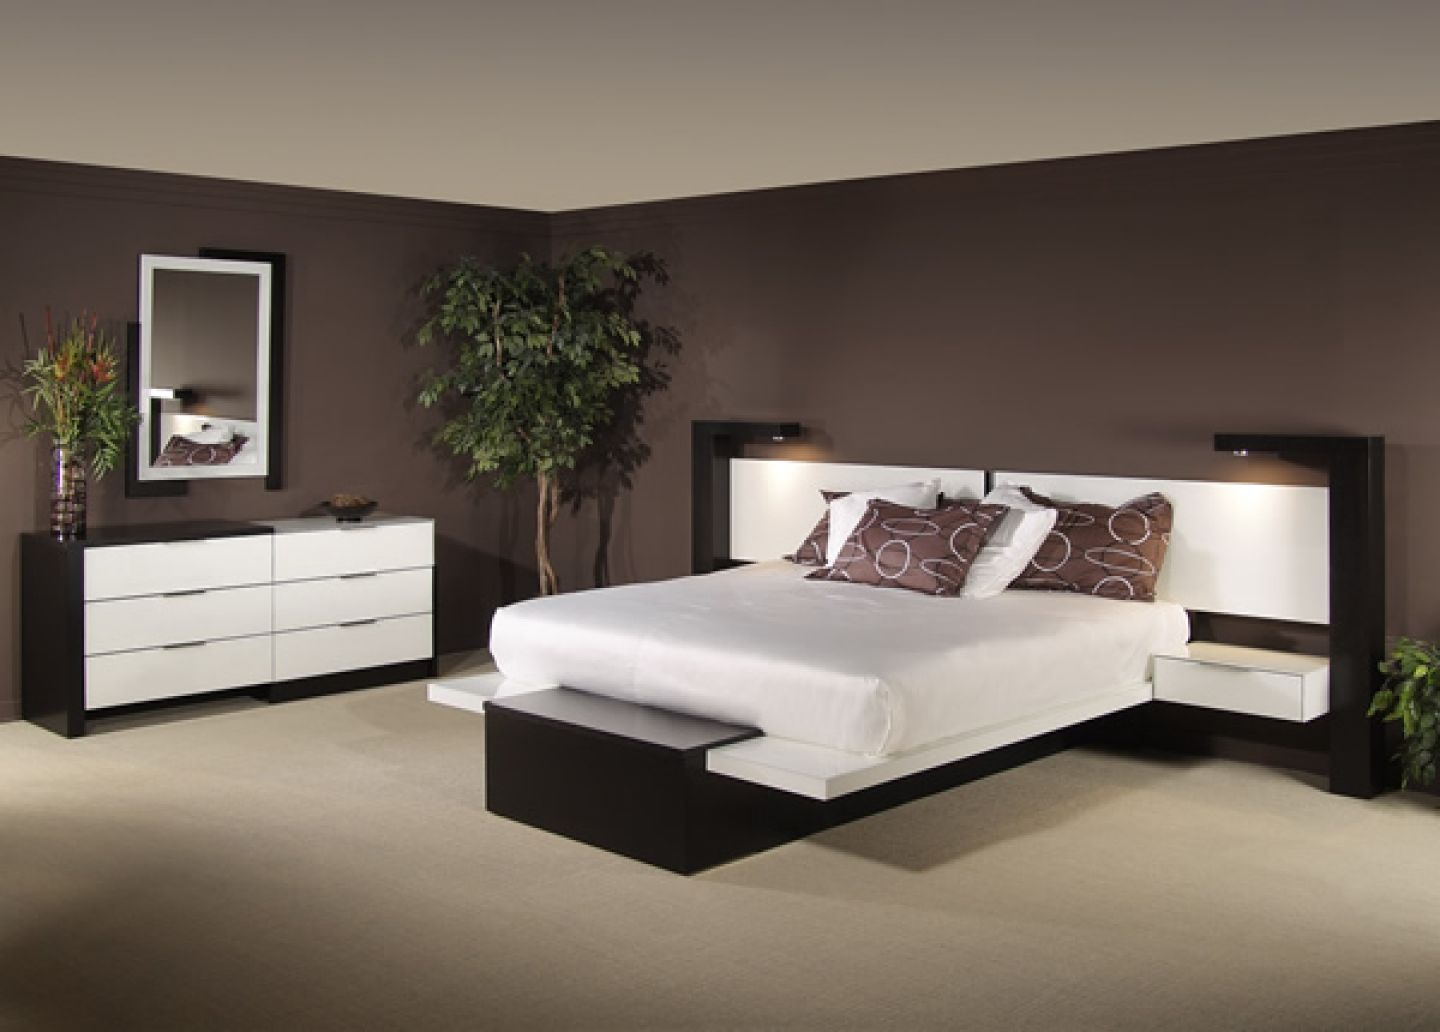 New Bedroom Designs new bedrooms designs - bedroom |